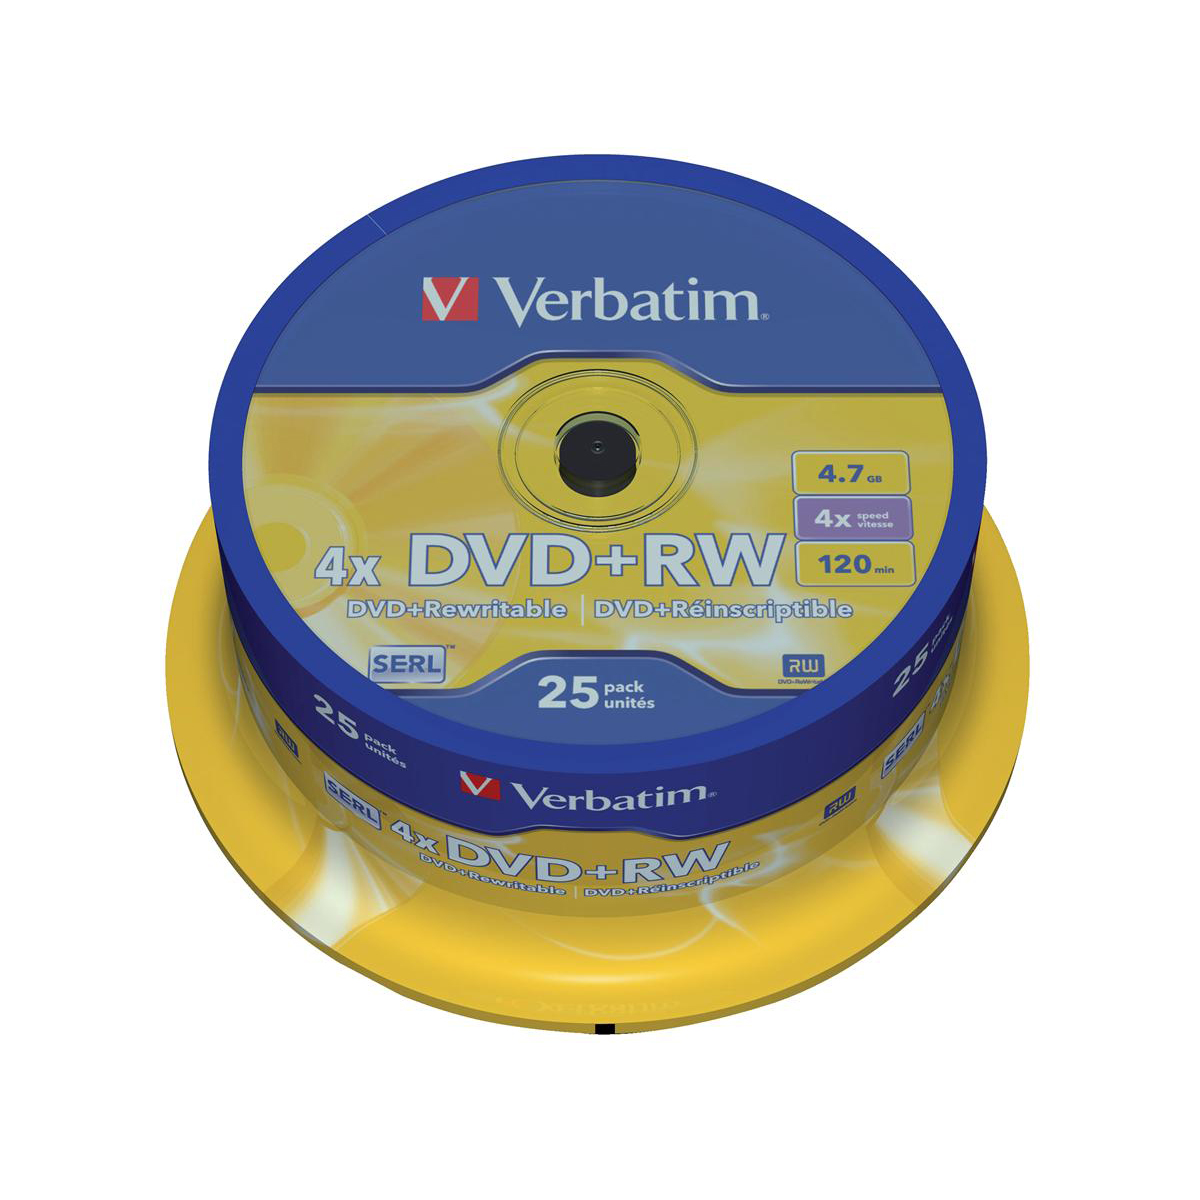 Digital versatile disks DVDs Verbatim DVD+RW Rewritable Disk Spindle 1x-4x Speed 120min 4.7Gb Ref 43489 Pack 25